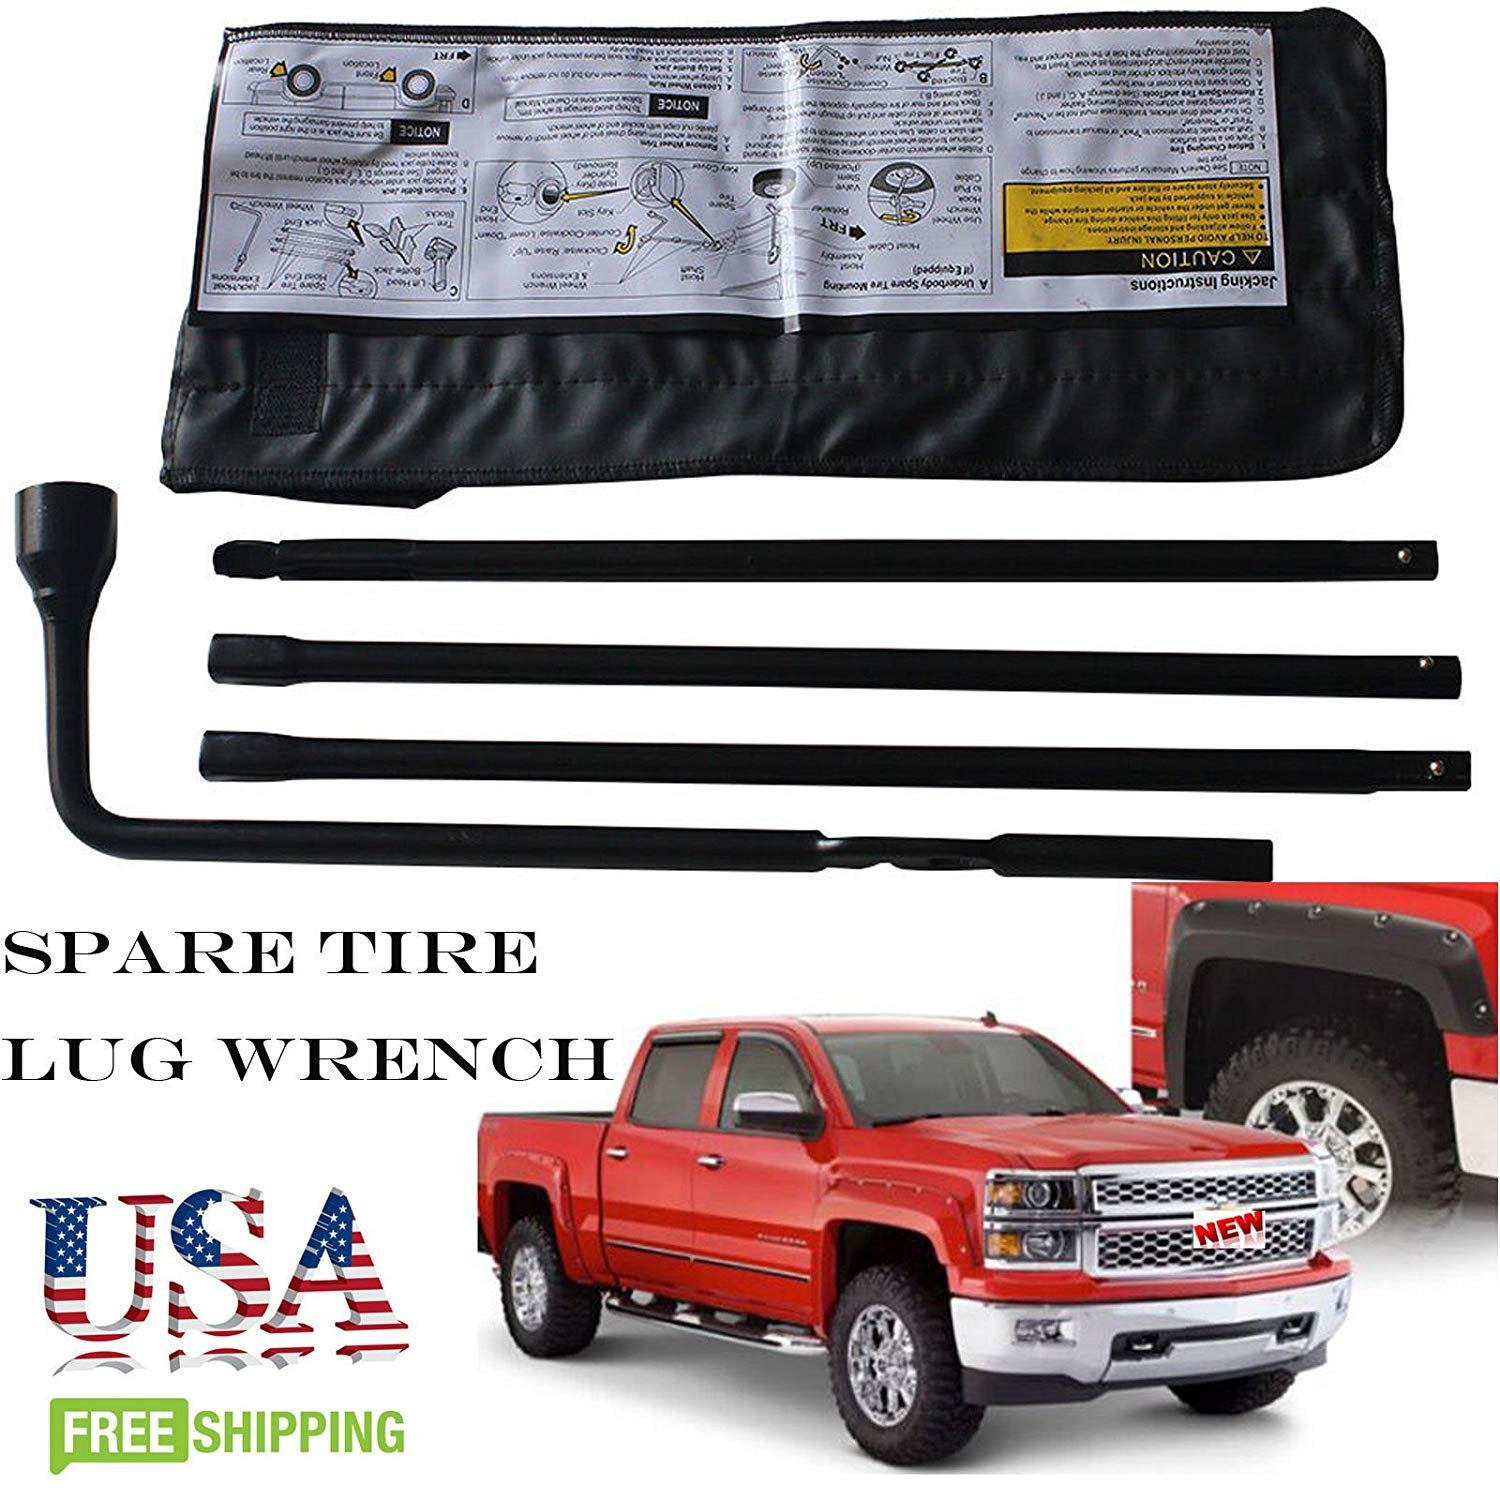 For 2004-14 Chevrolet Silverado GMC Sierra Spare Tire Lug Wrench Tool Kit & Storage Case 22969377 20782708 Replacement